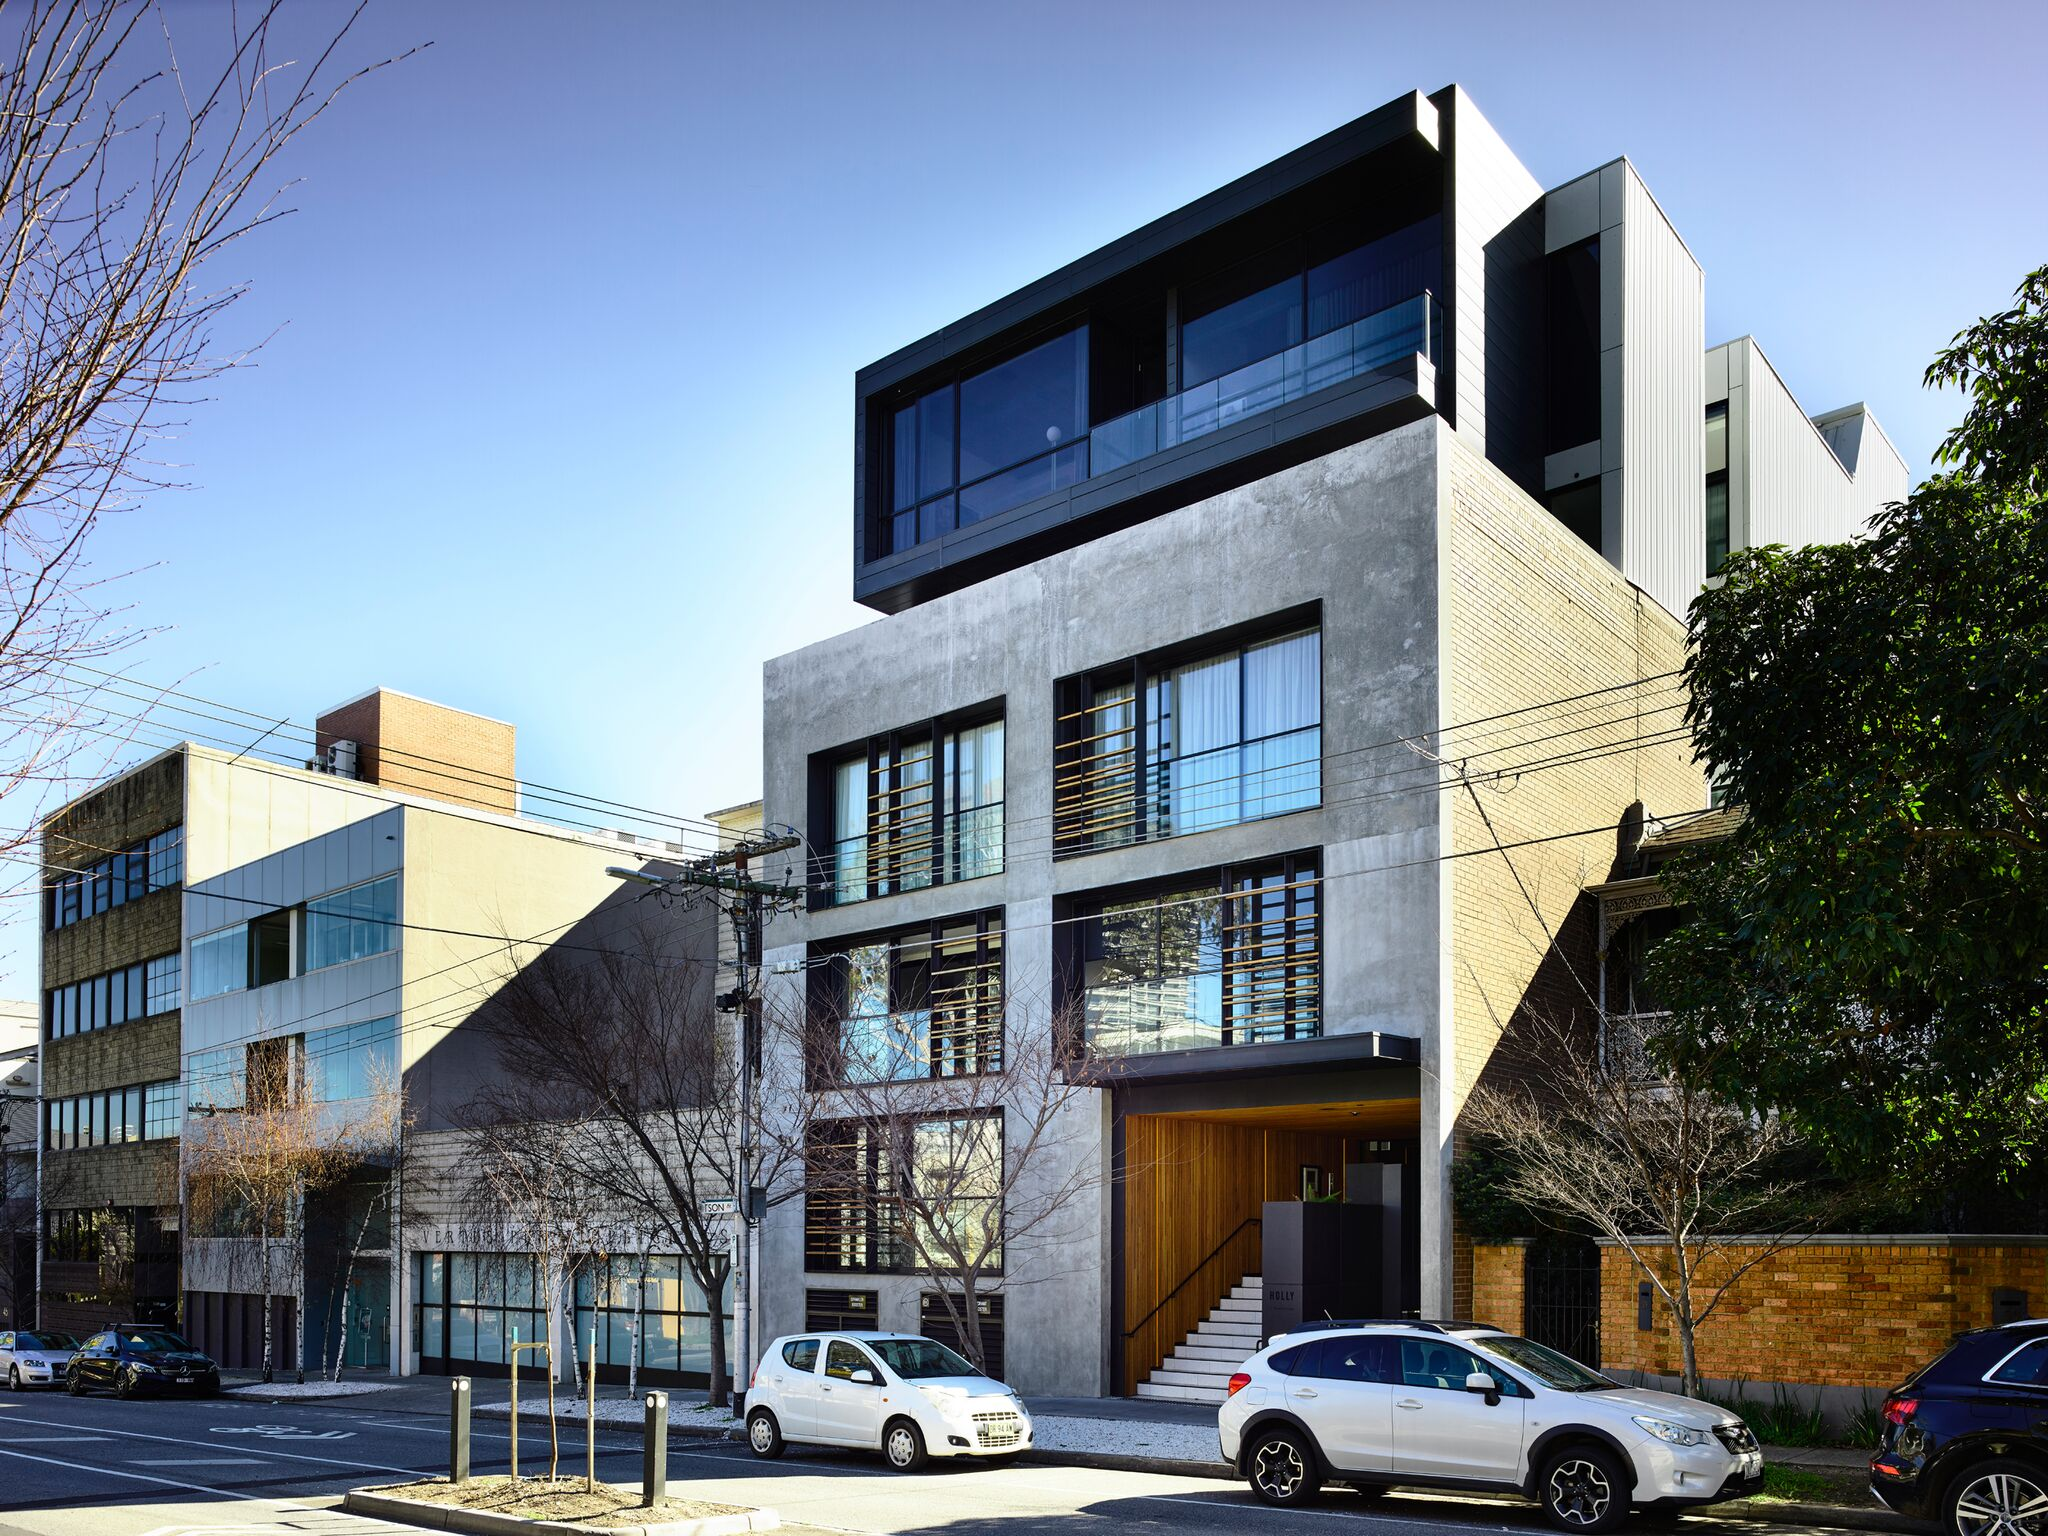 Gallery Of Holly Penthouse By Tom Robertson Architects Local Australian Architecture & Design Melbourne, Vic Image 3